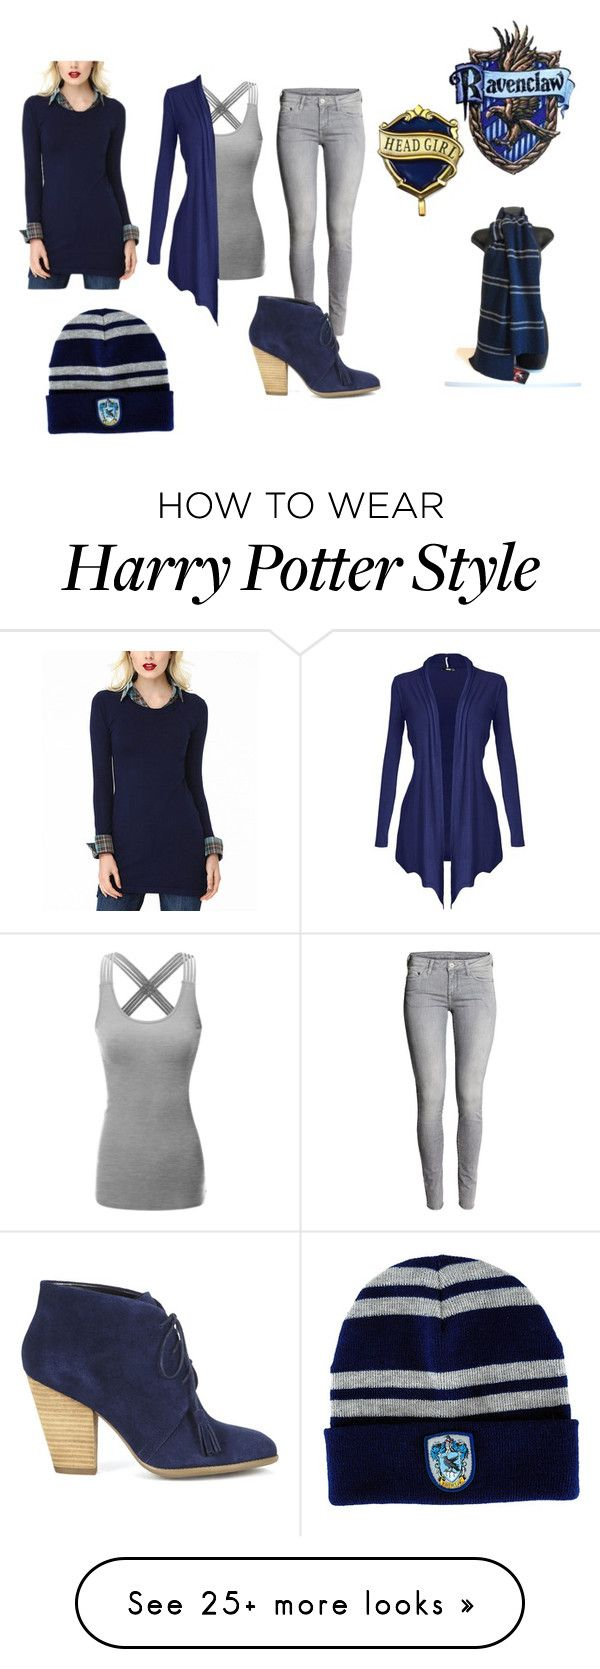 """Ravenclaw: Hogsmeade"" by dominique-waller on Polyvore featuring Doublju and Sole Society"